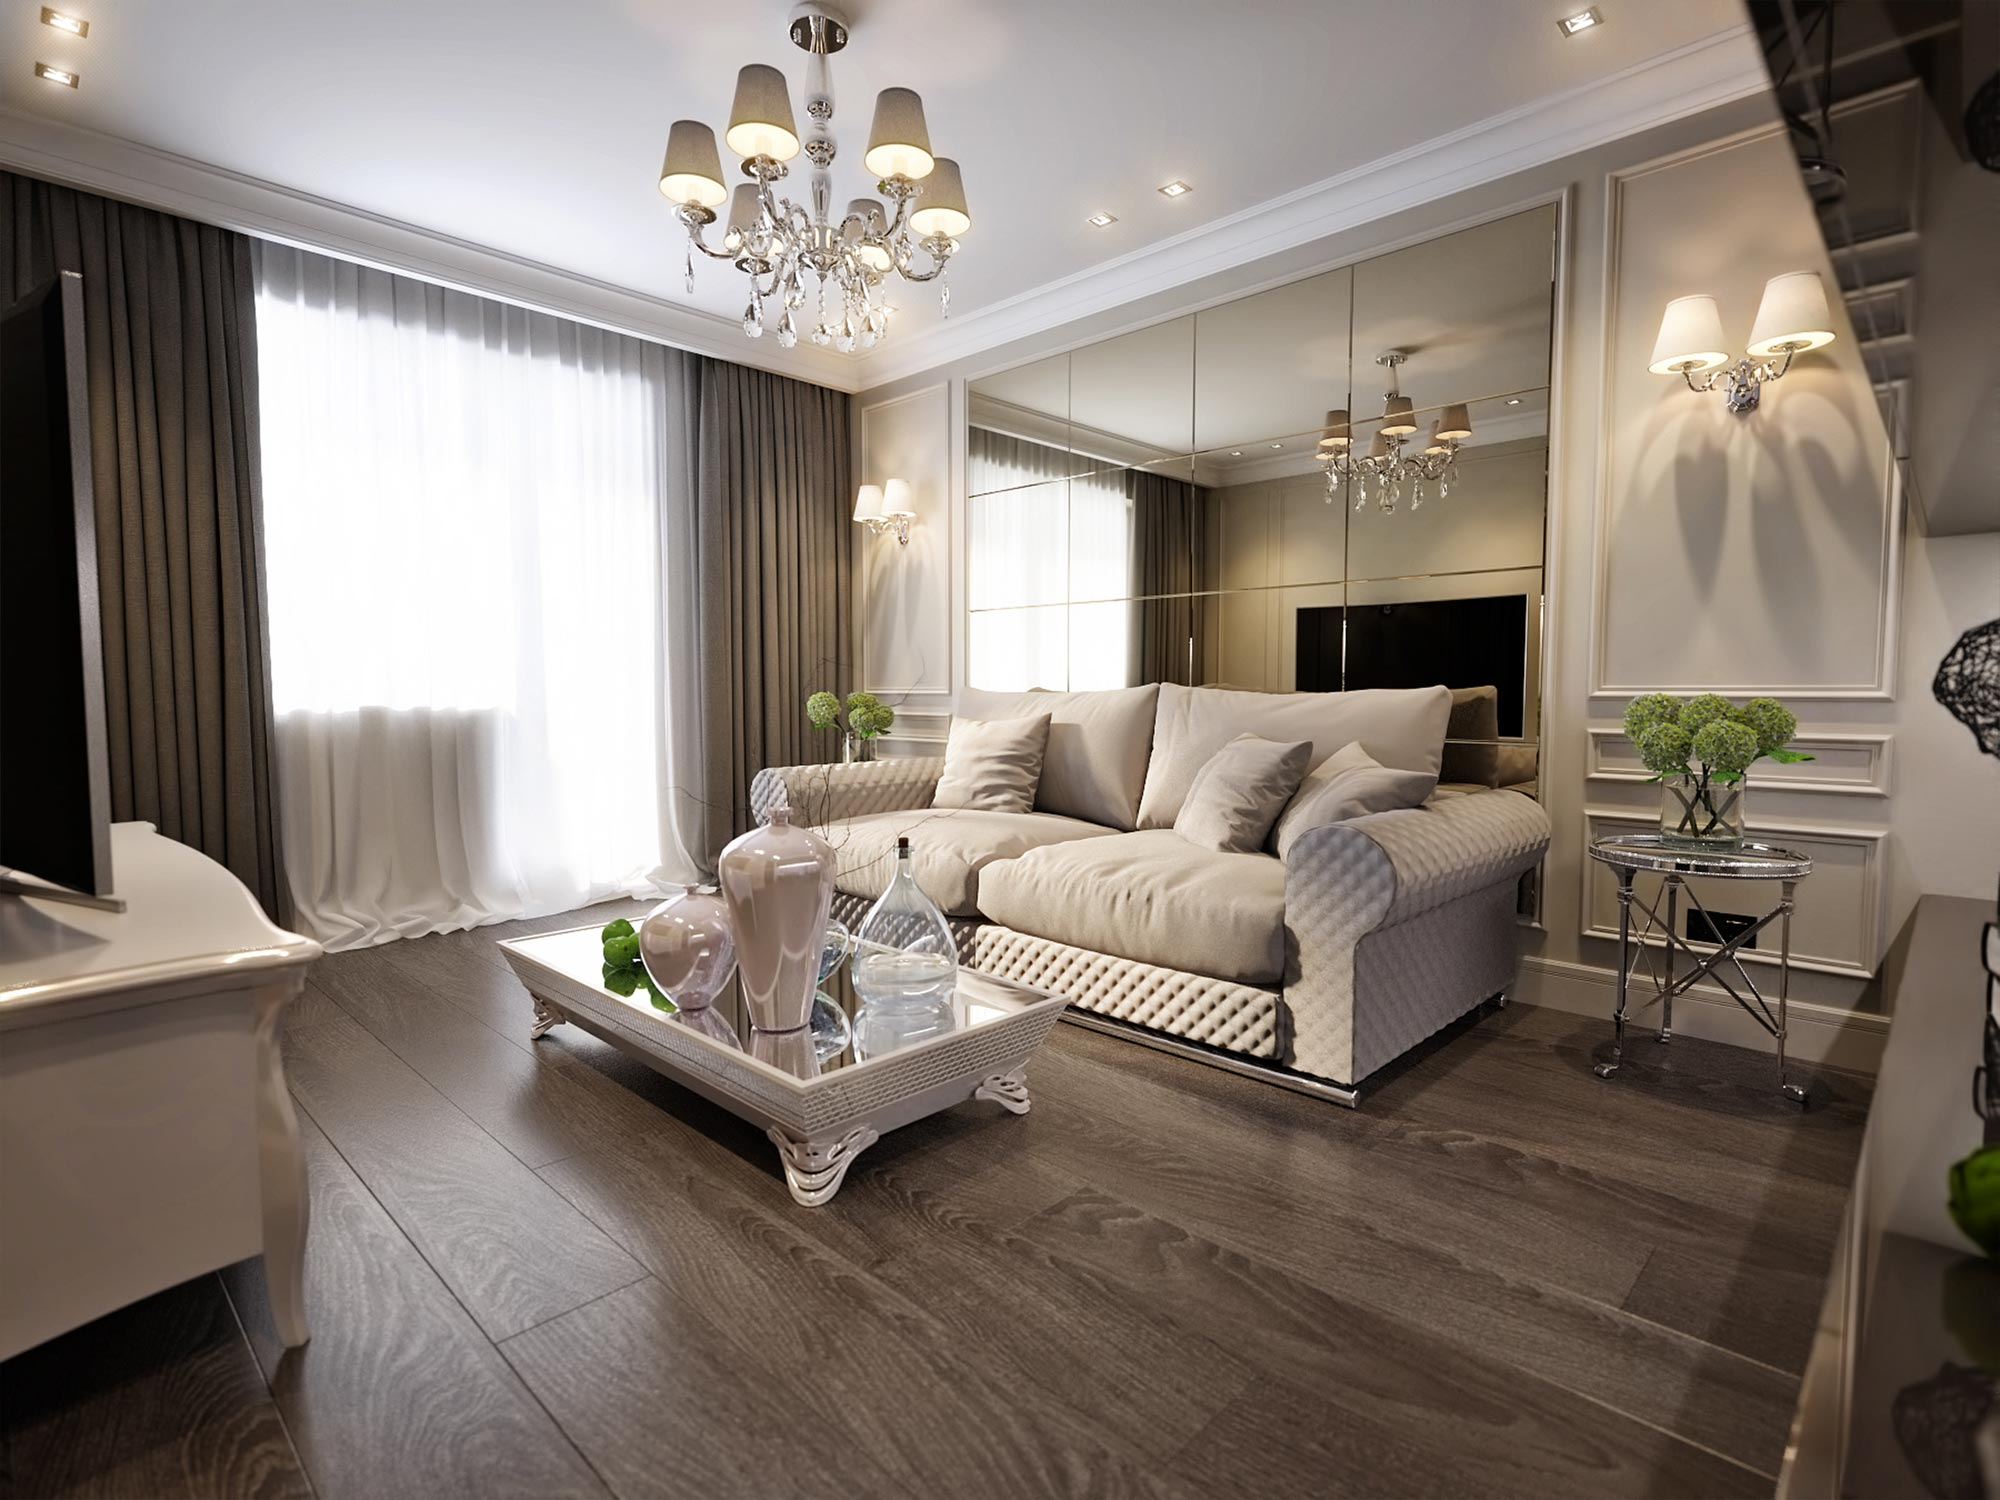 Light shining through the curtains to a modern luxury living room interior with beautiful lamps on the ceiling and two person couch with low table with glass vase